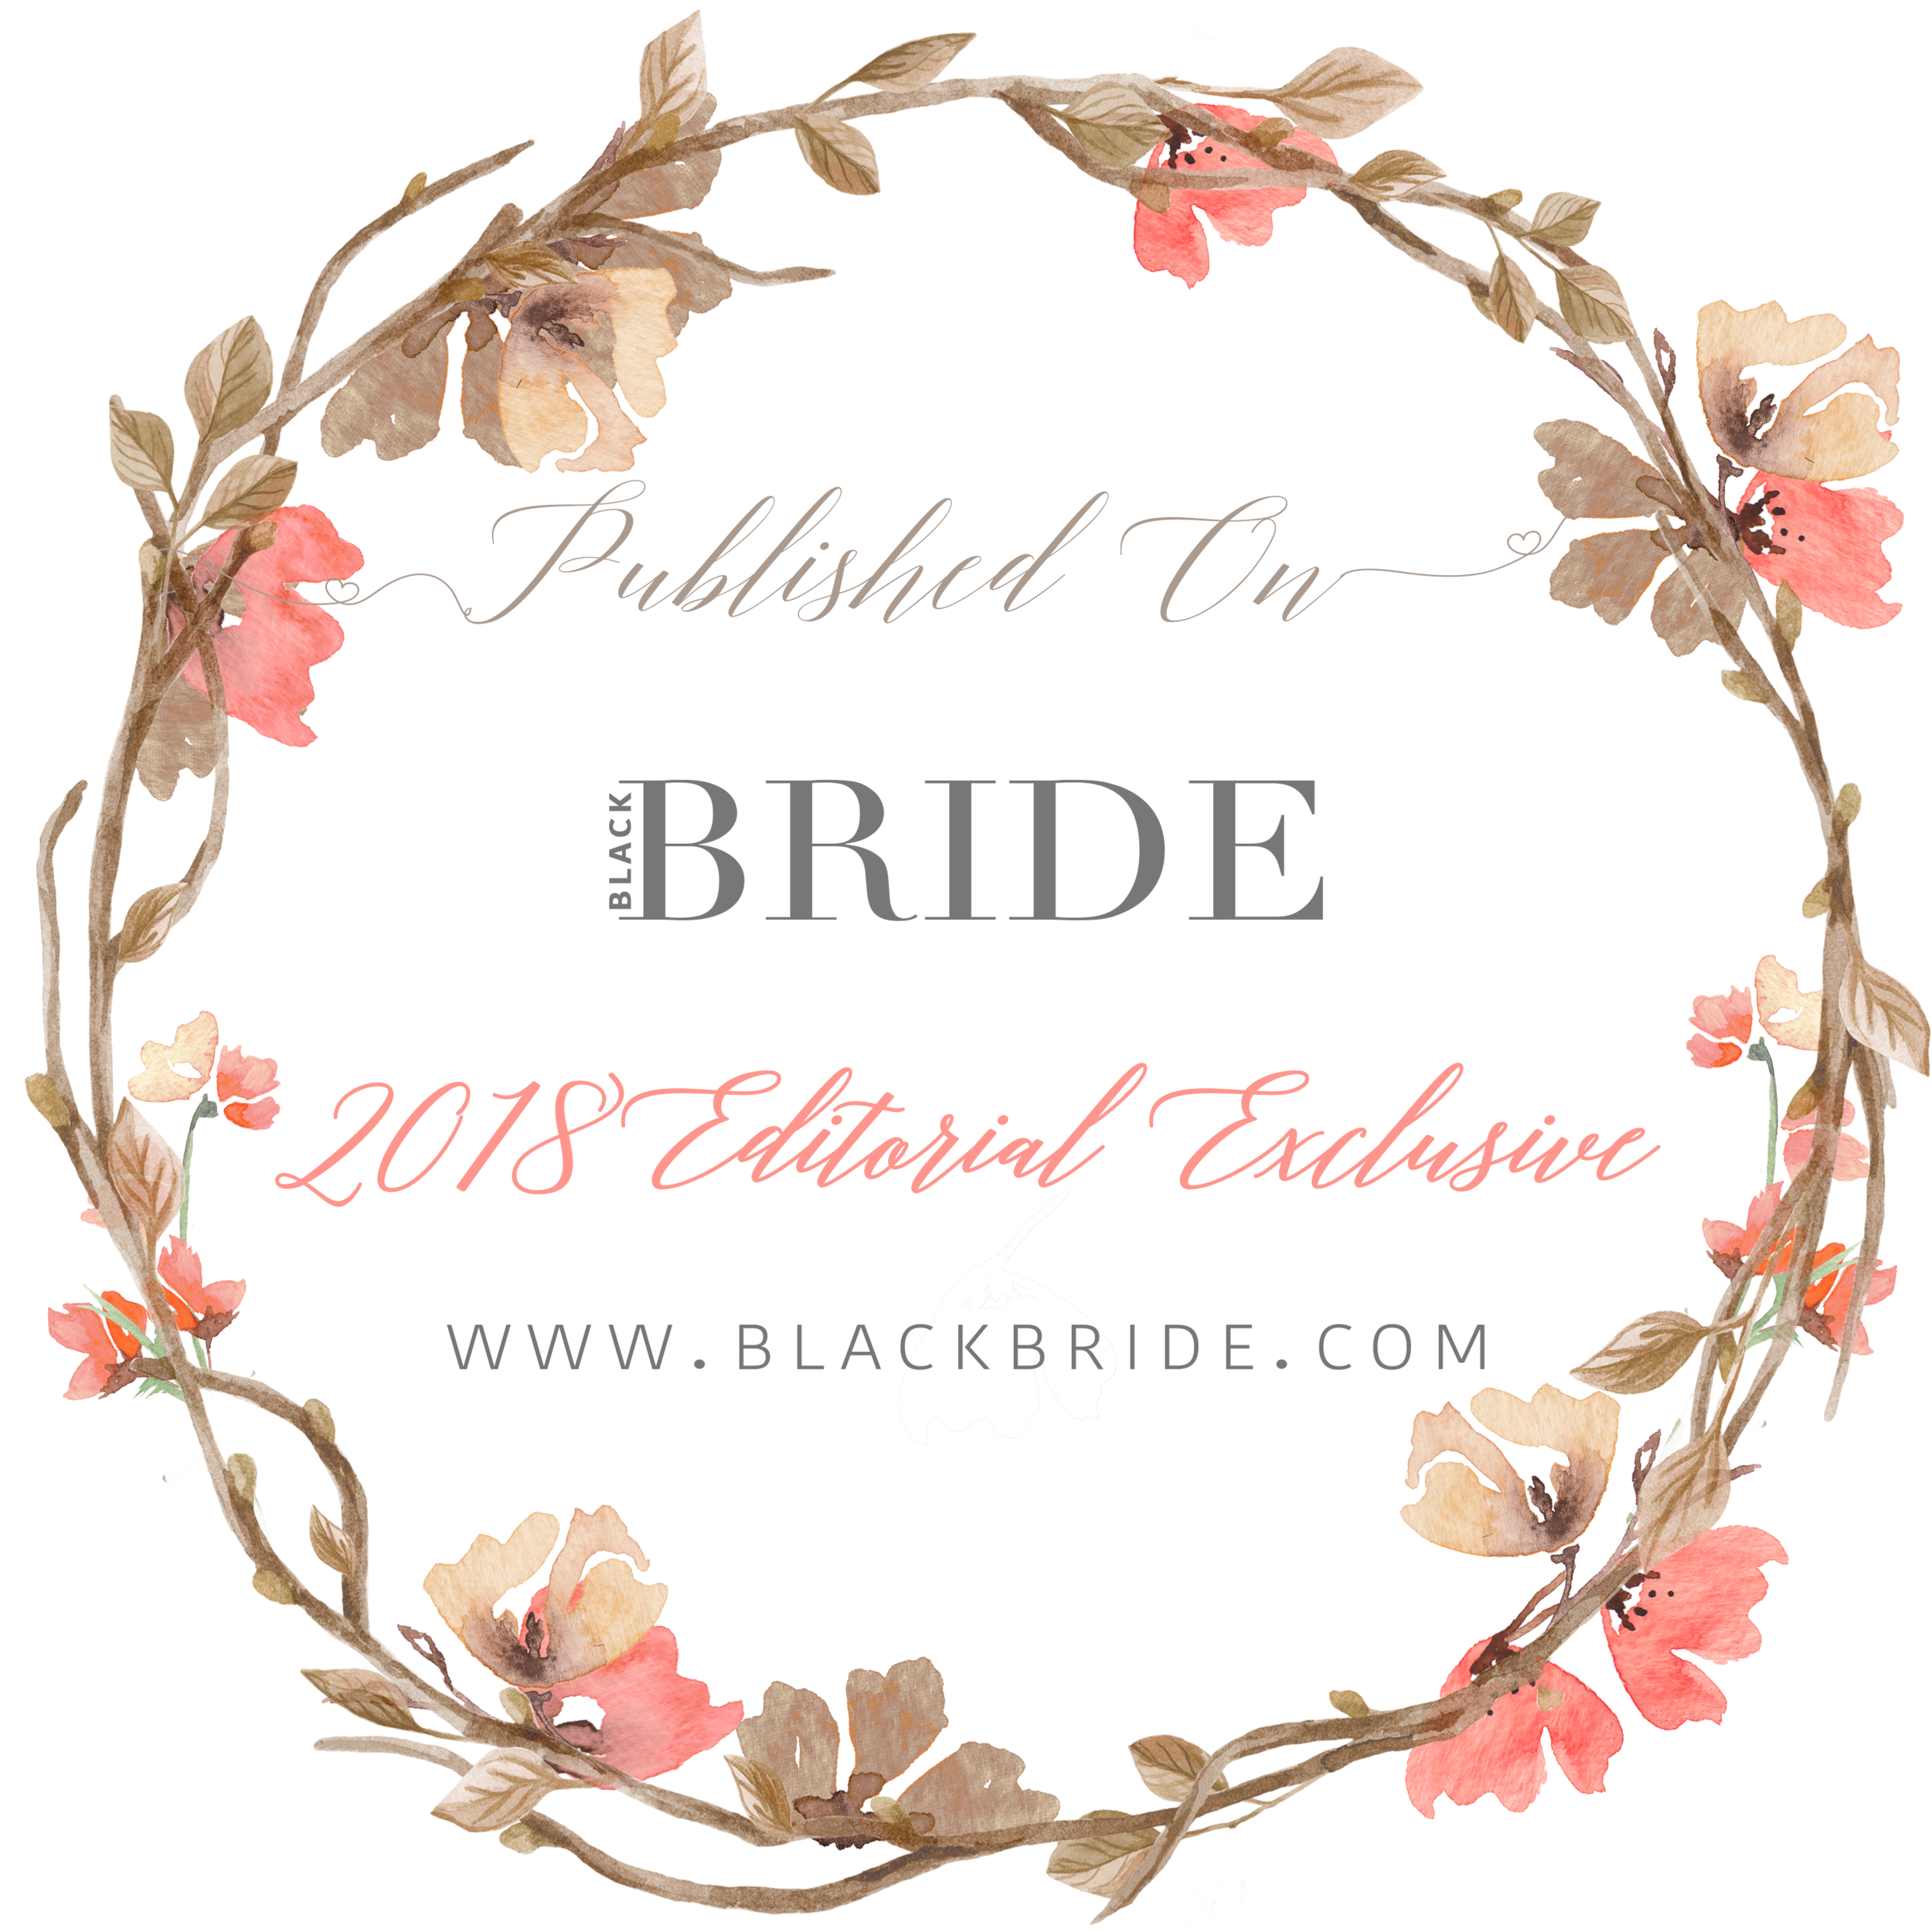 black bride badge Editorial Exclusive2.png